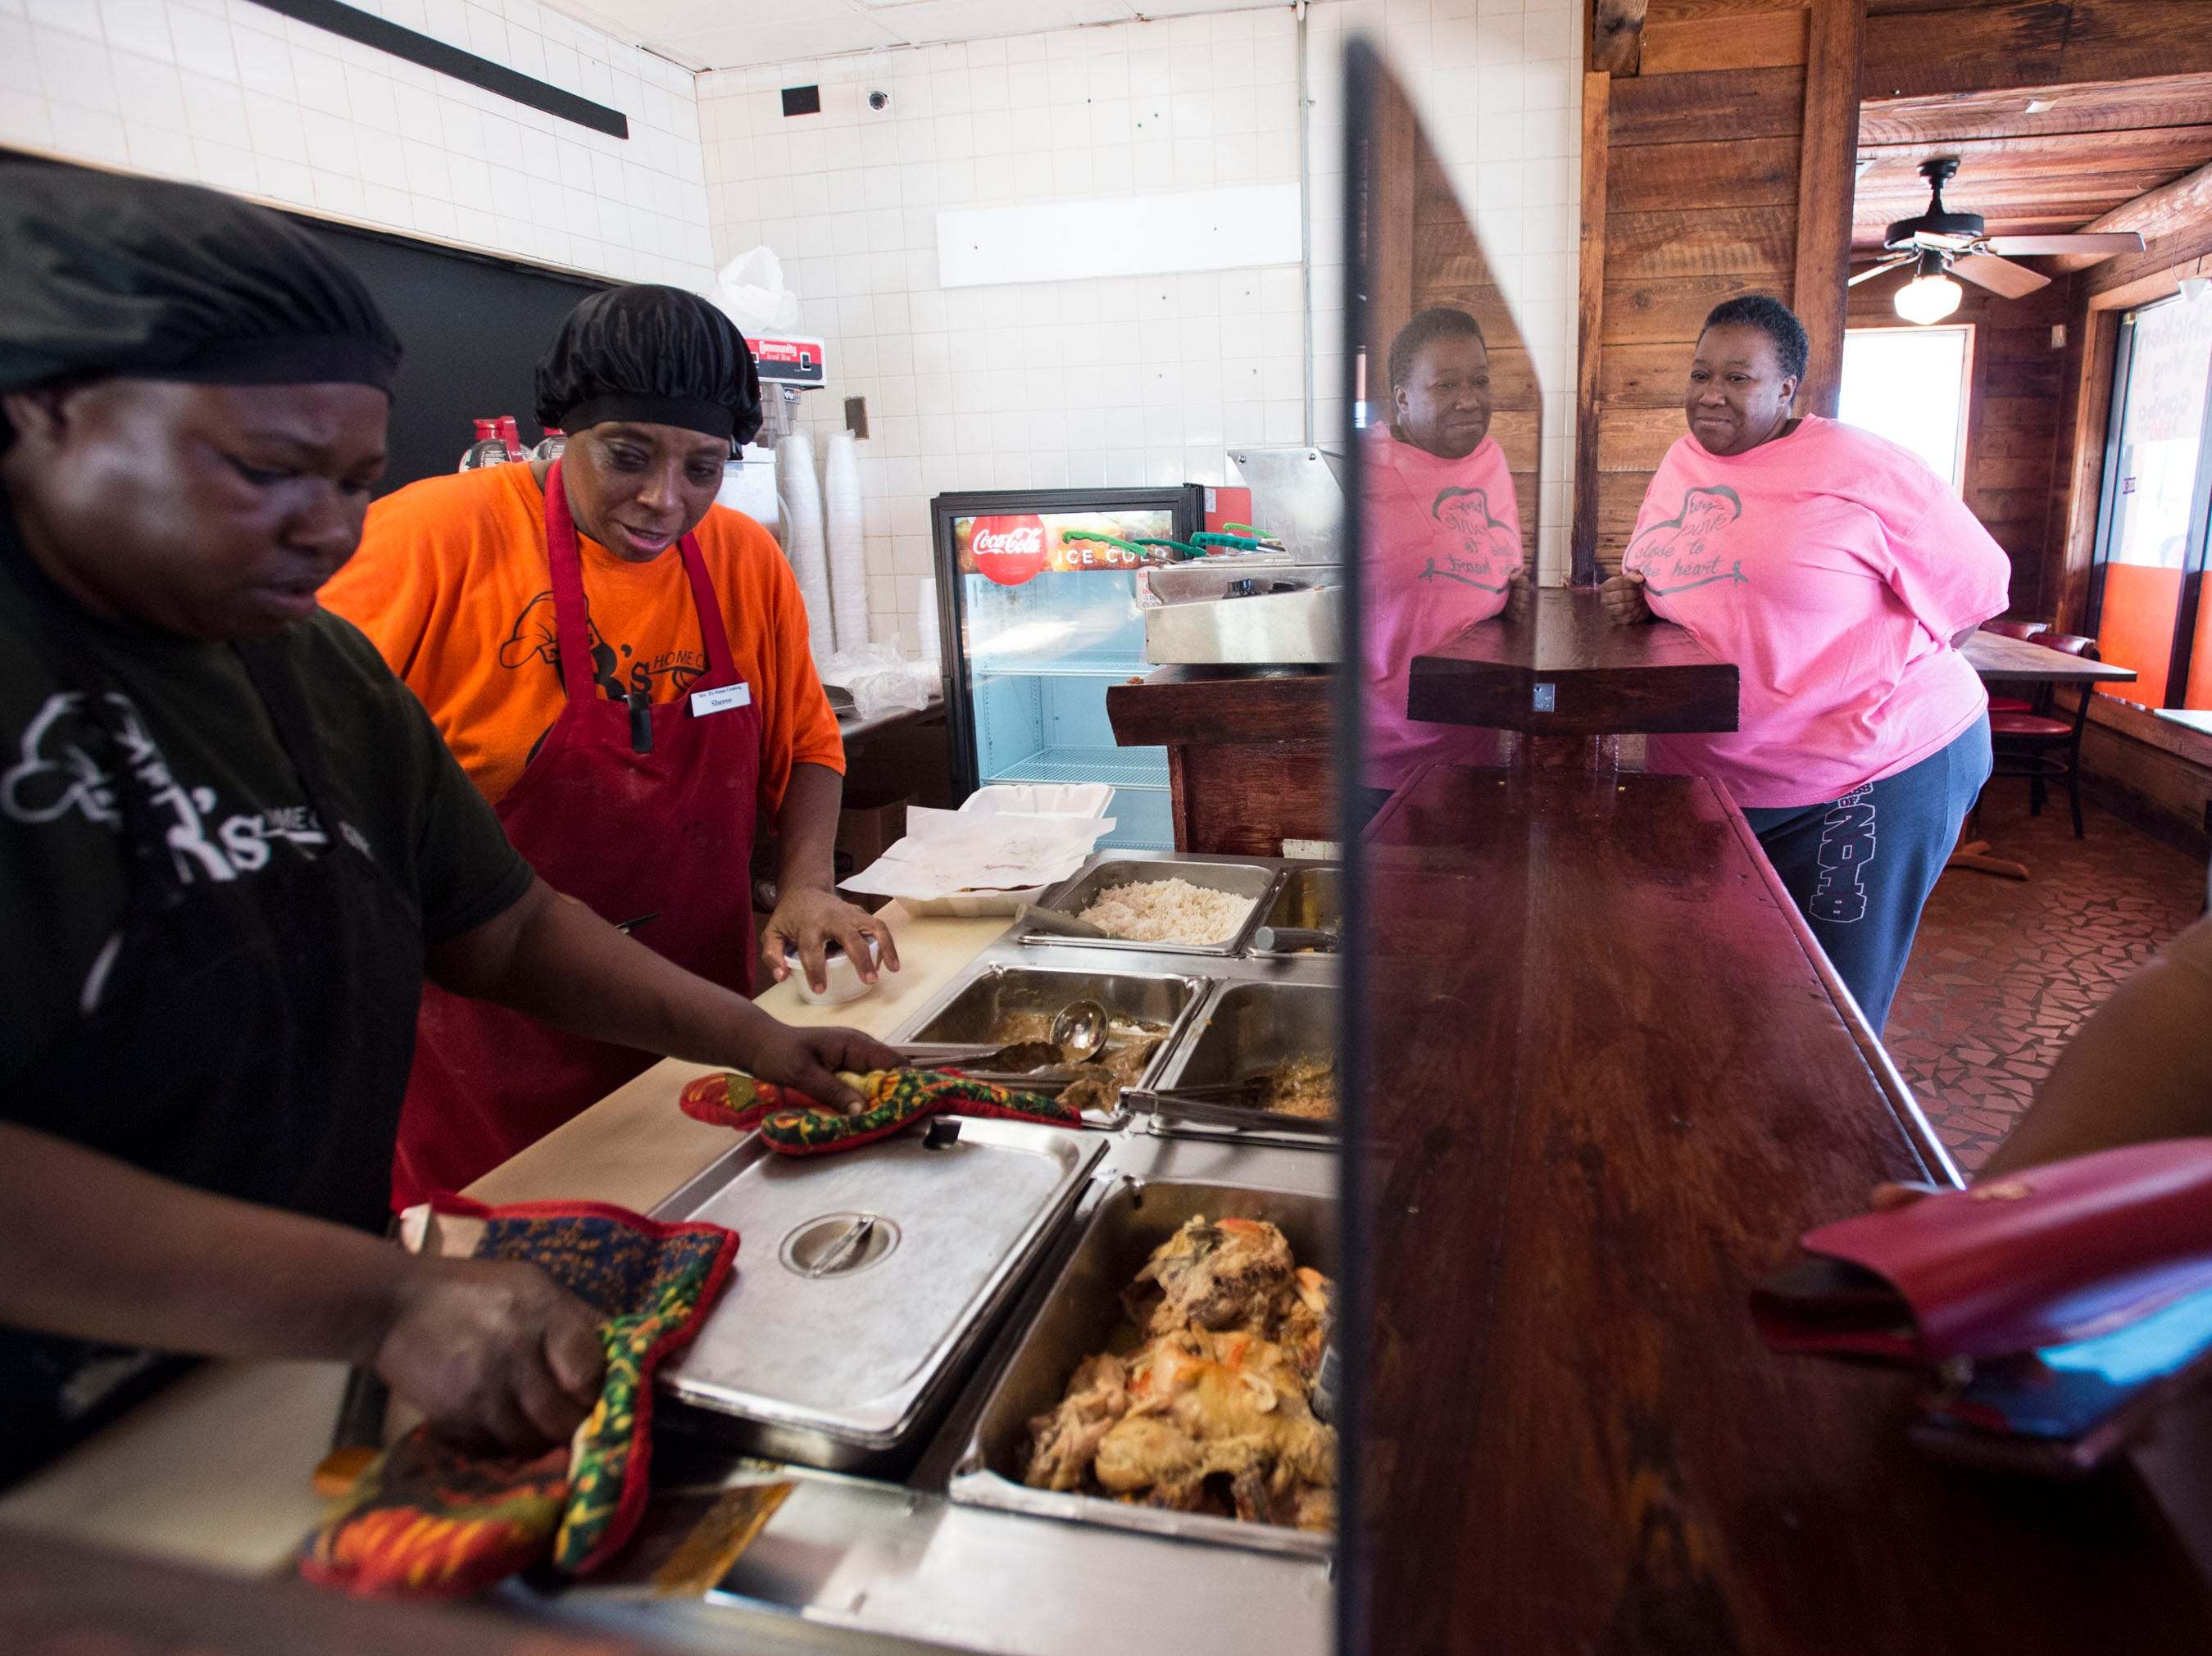 Customers get lunch at Mrs. B's restaurant new location at 415 Air Base Blvd. in Montgomery, Ala., on Tuesday, March 12, 2019. The iconic home cooking restaurant's original location burned down in a Jan. 20th fire.